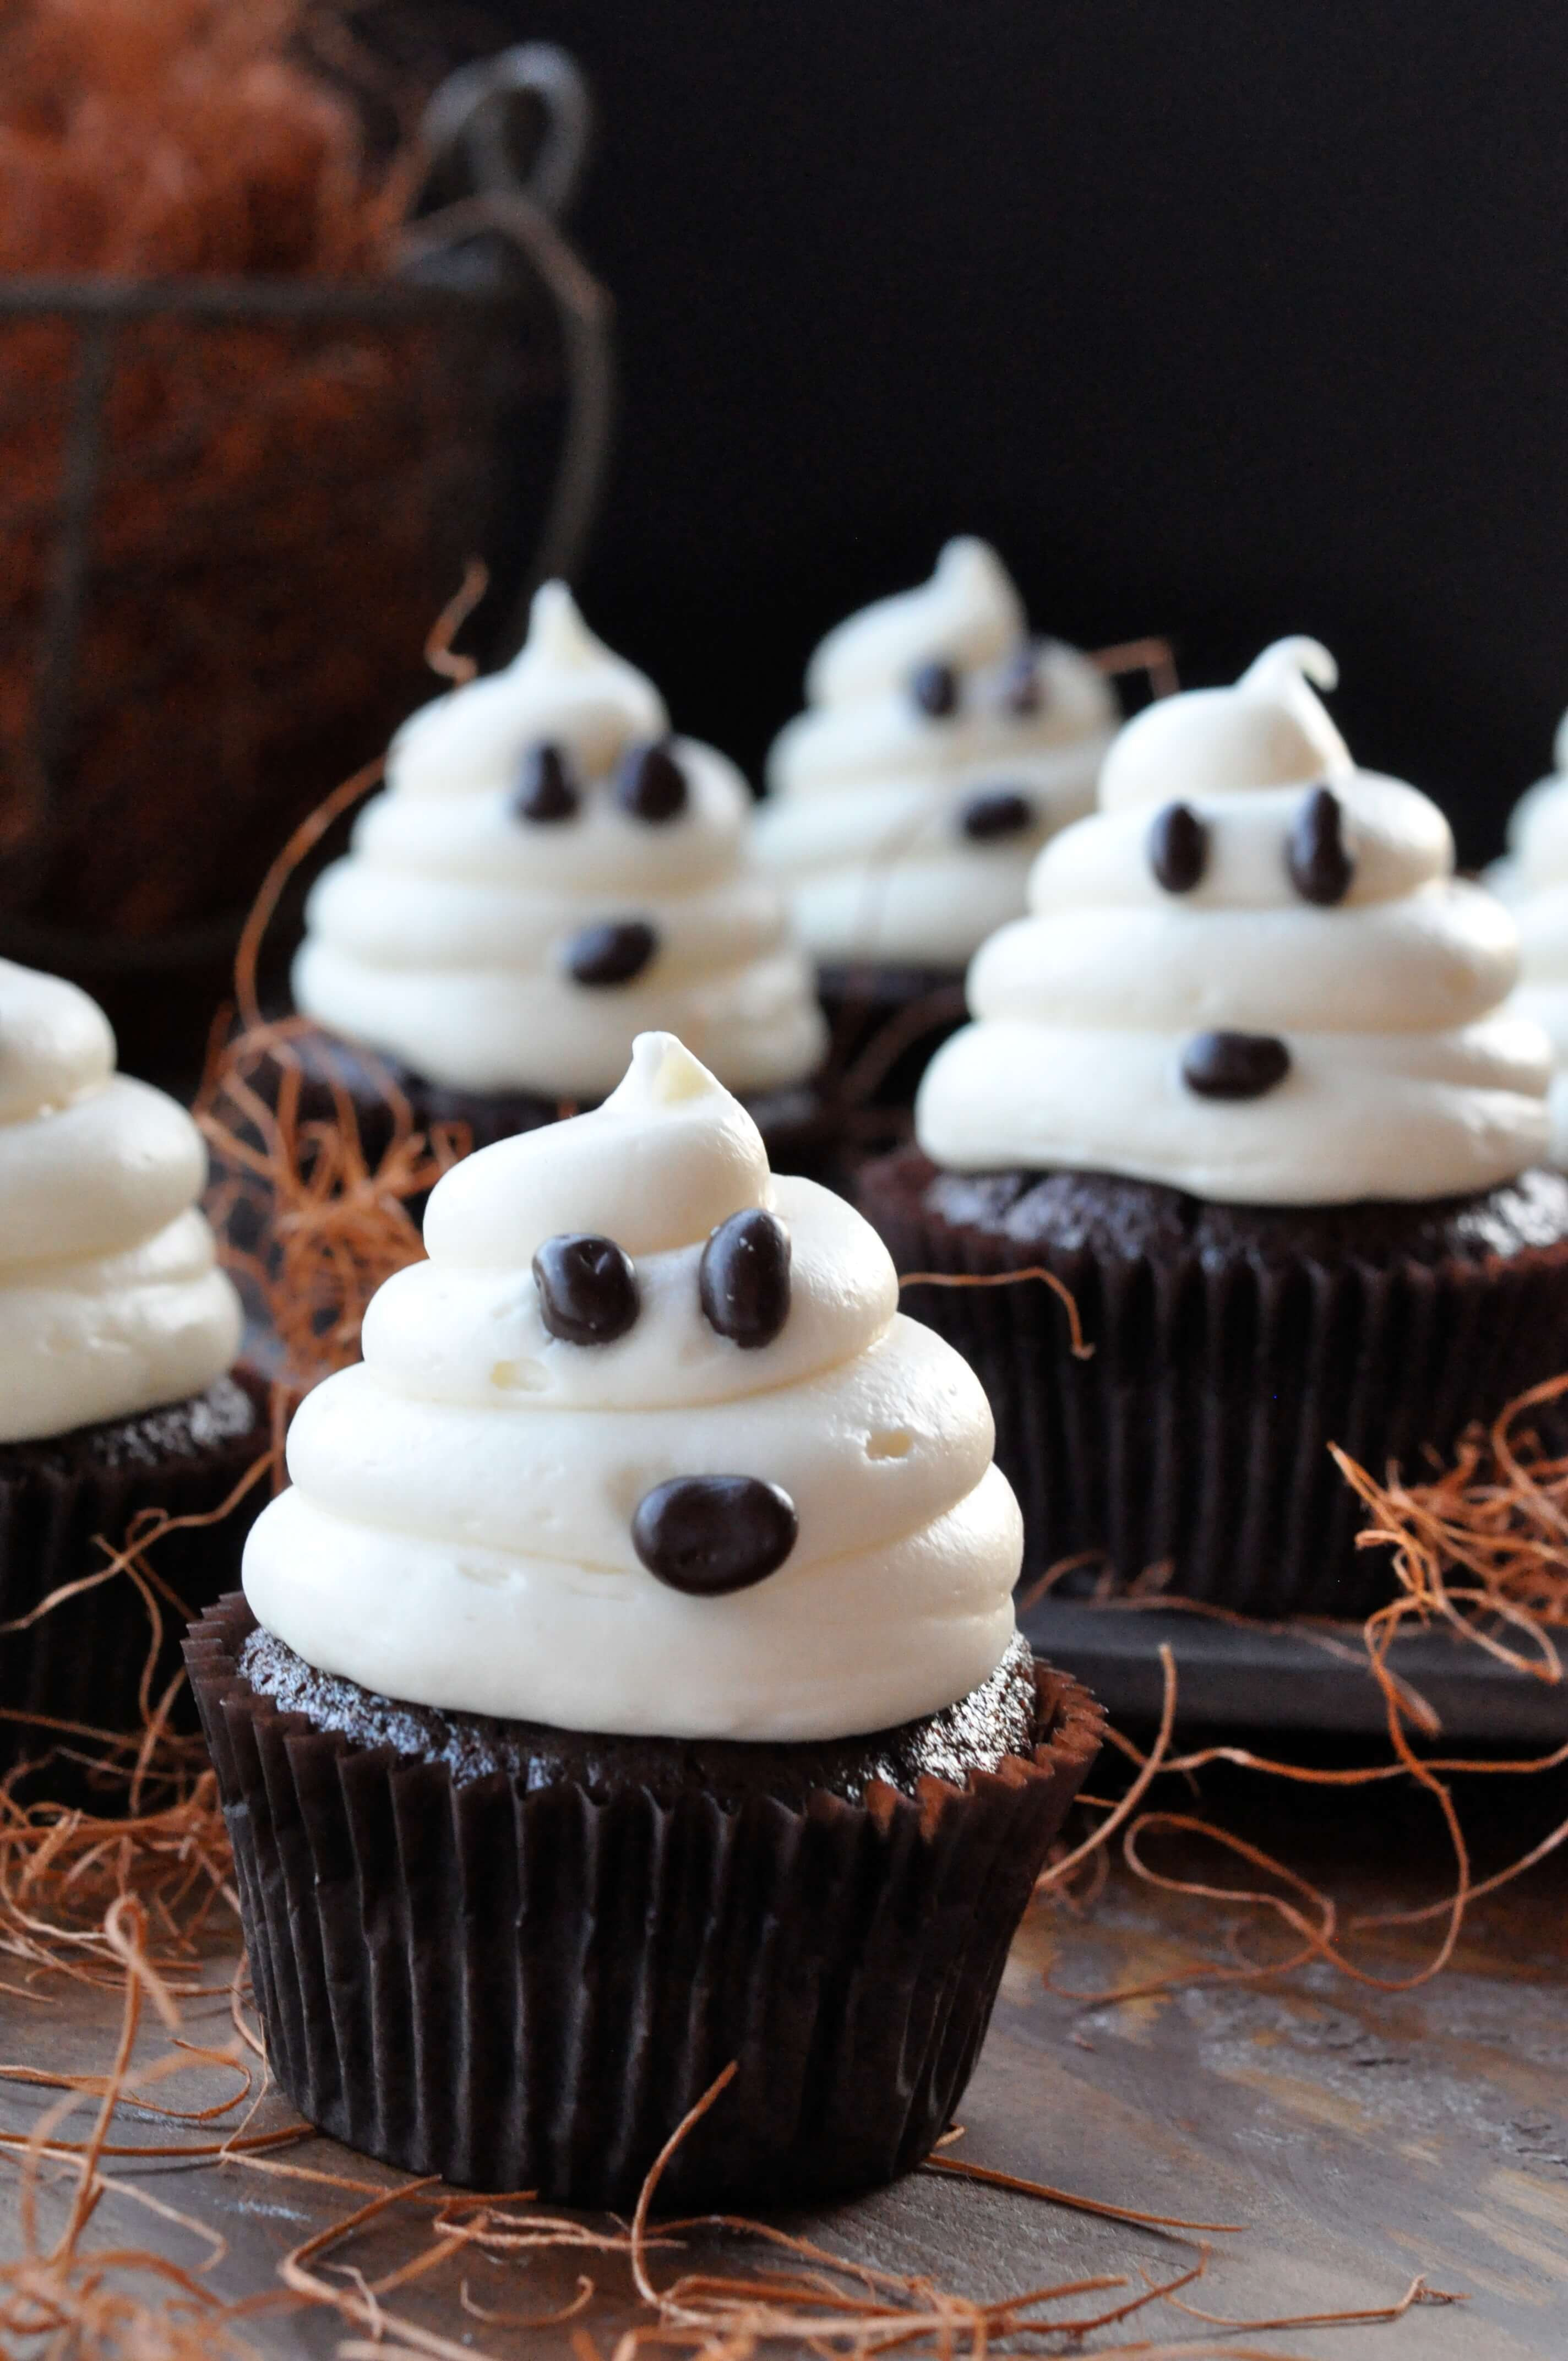 Homemade Halloween Cupcakes  Halloween Ghosts on Carrot Cake Recipe—Fast and Easy